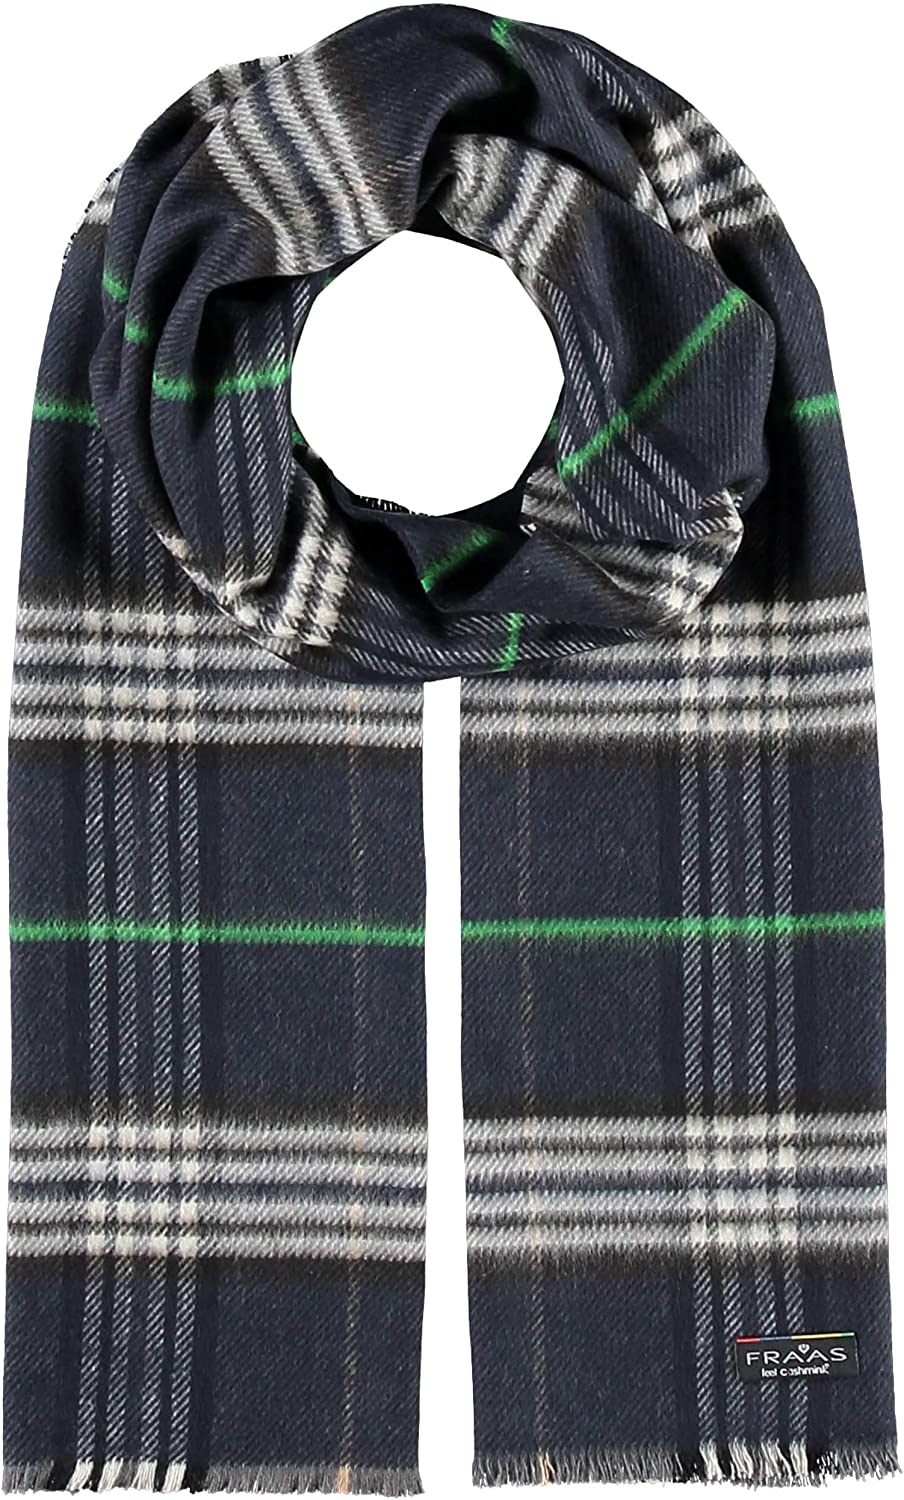 FRAAS Plaid Sustainability Animer and price revision Edition Cashmink - Women Portland Mall Scarf Men